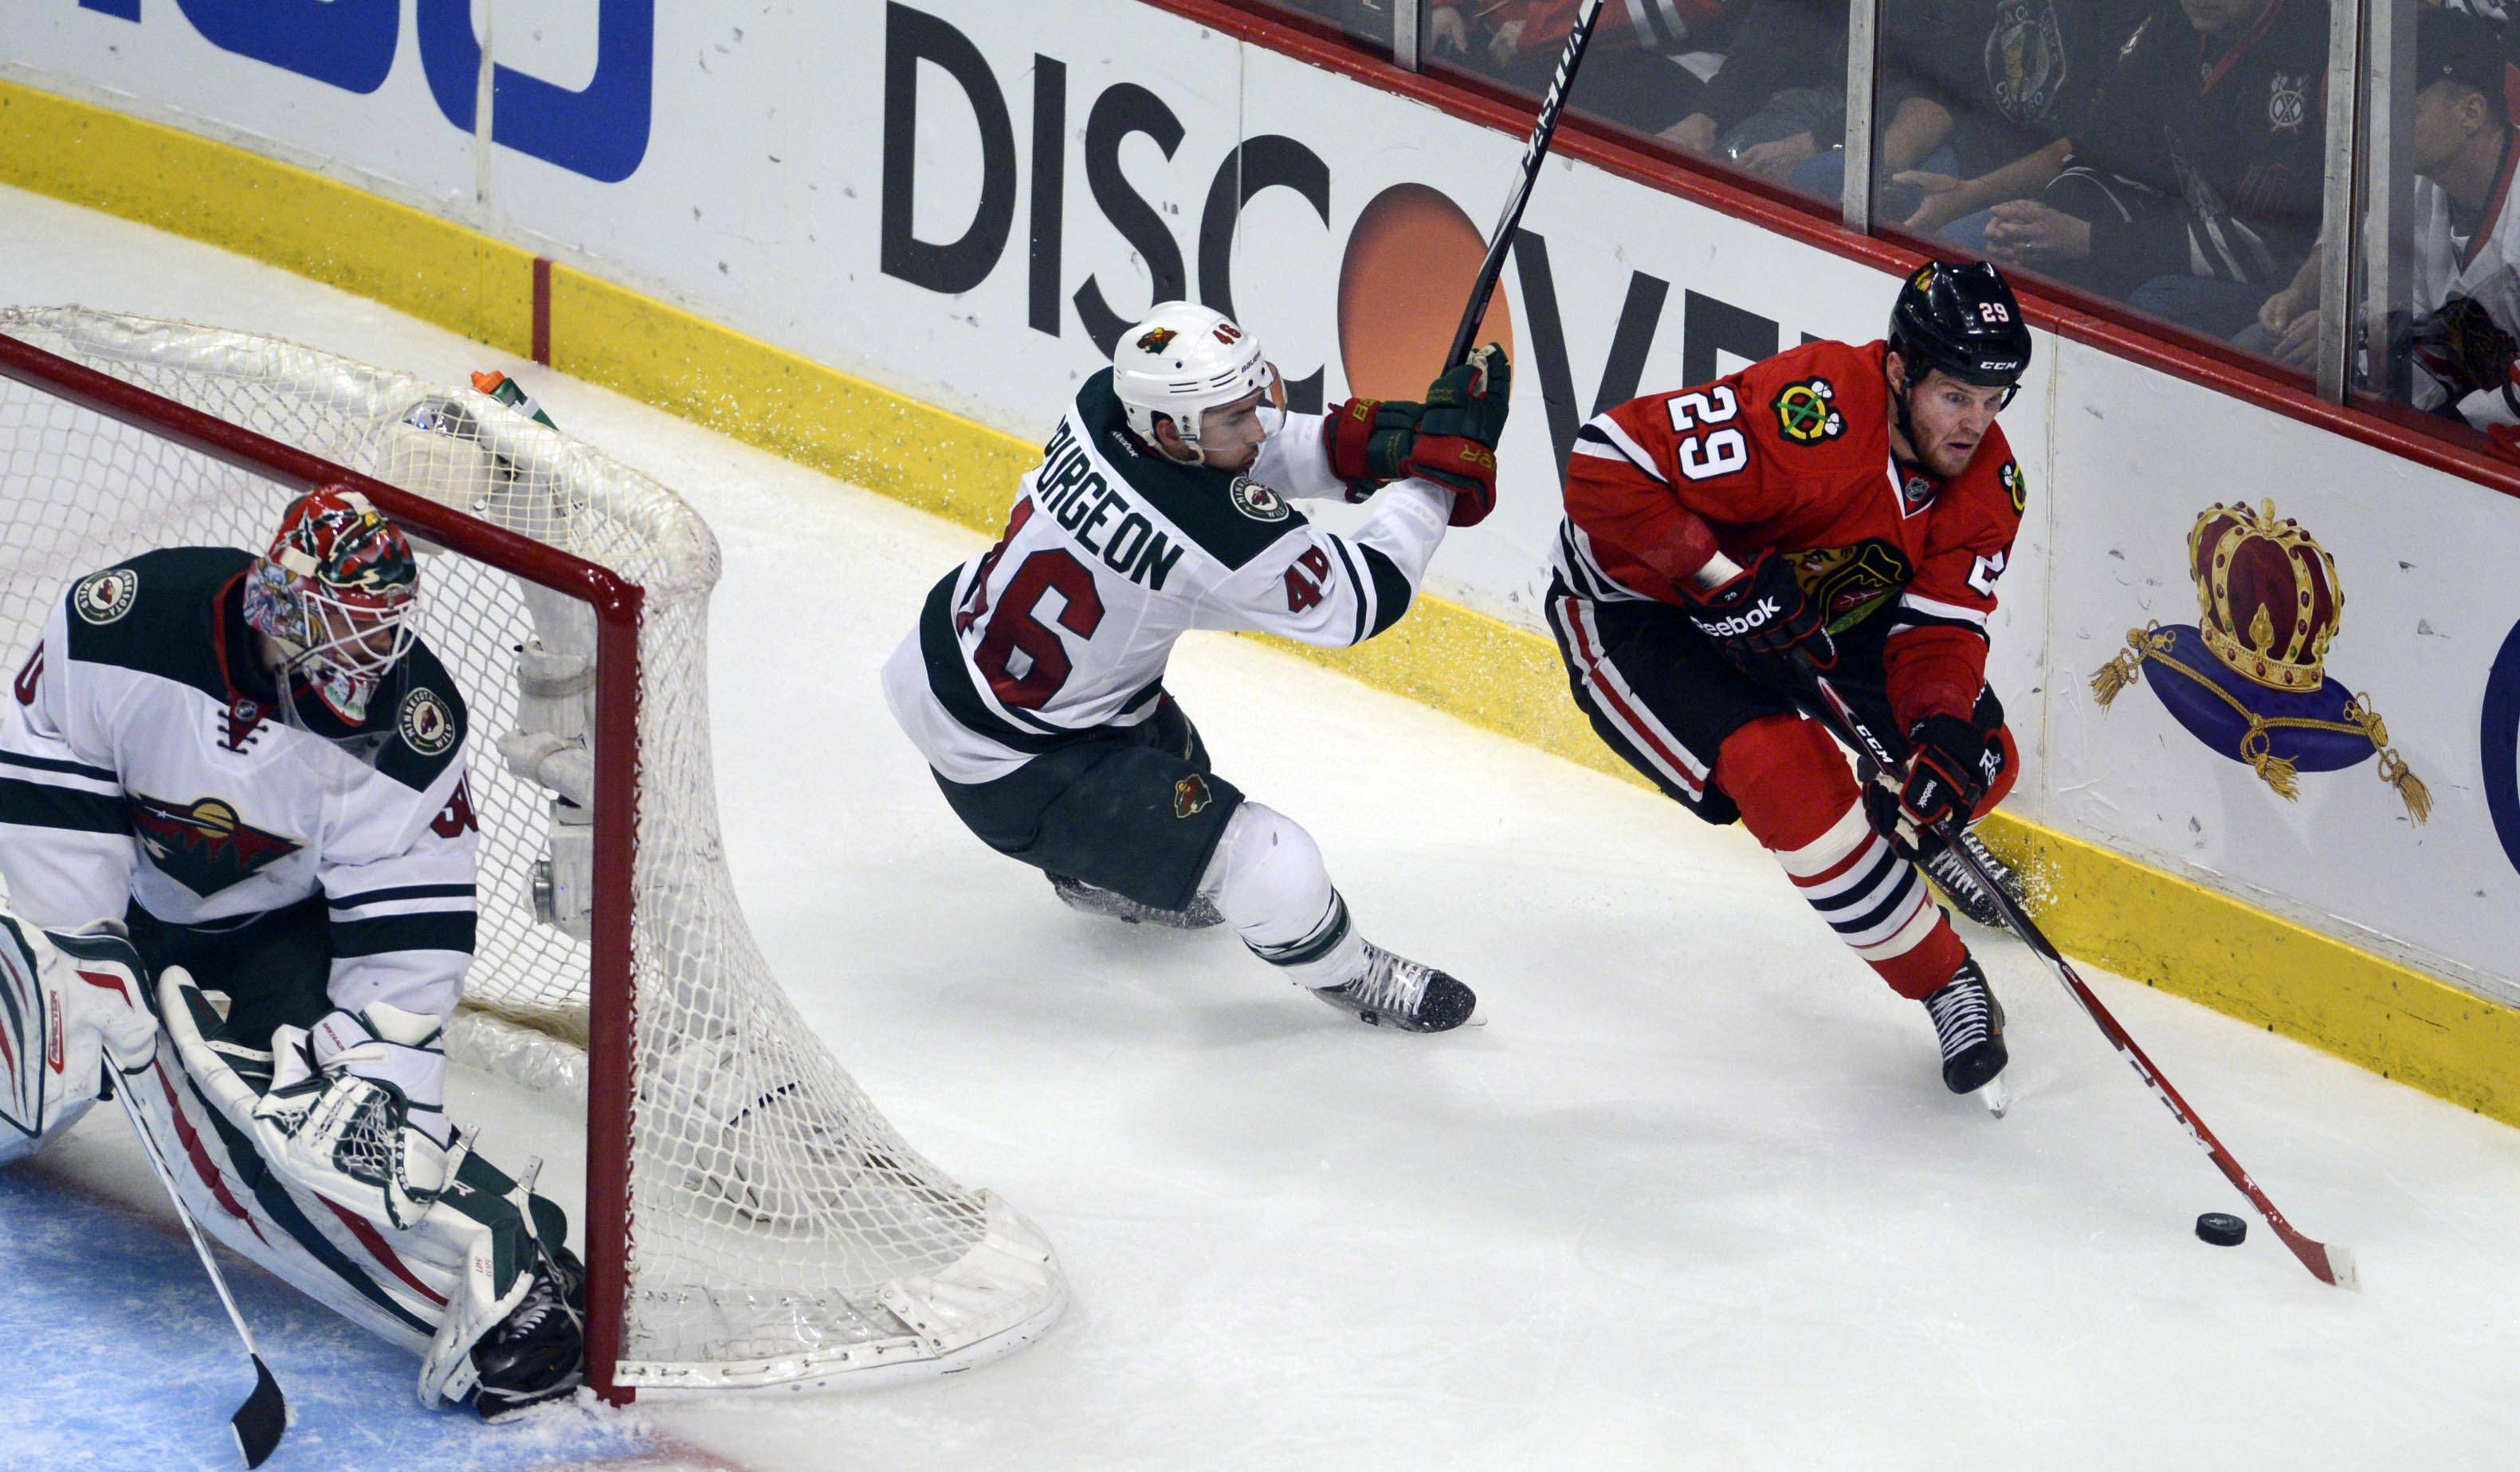 Bryan Bickell, here being chased by Wild defenseman Jared Spurgeon, scored a goal and added 2 assists Sunday as the Hawks beat the Wild 4-1 in Game 2 of their Western Conference second-round playoff series at the United Center.